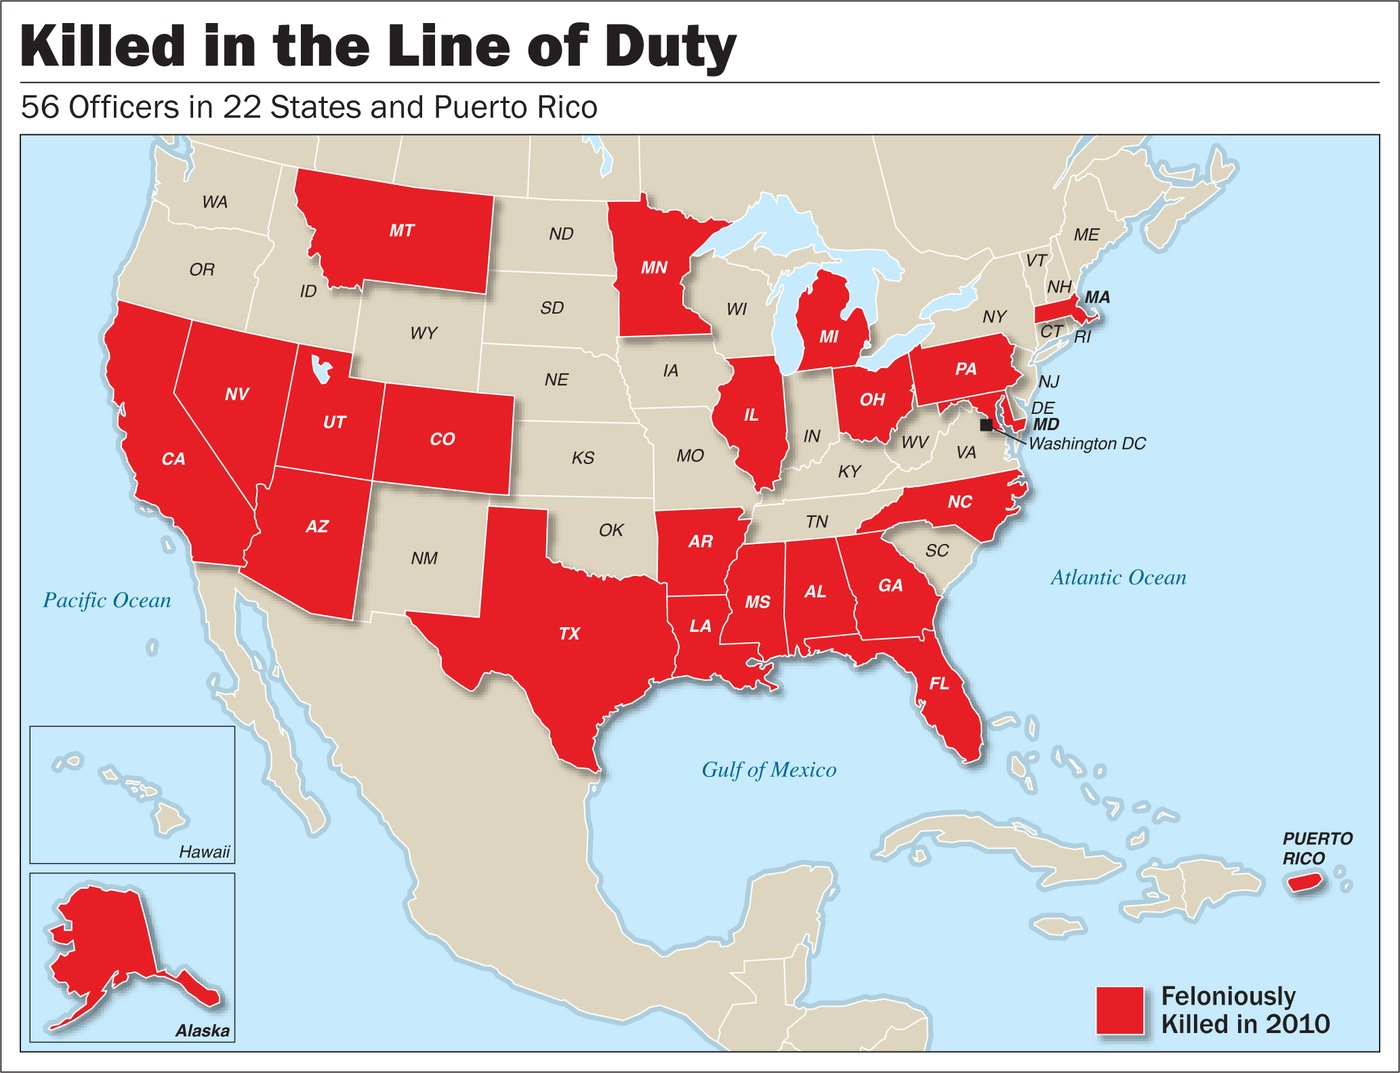 A total of law enforcement officers in 22 states and Puerto Rico were feloniously killed in 2010.